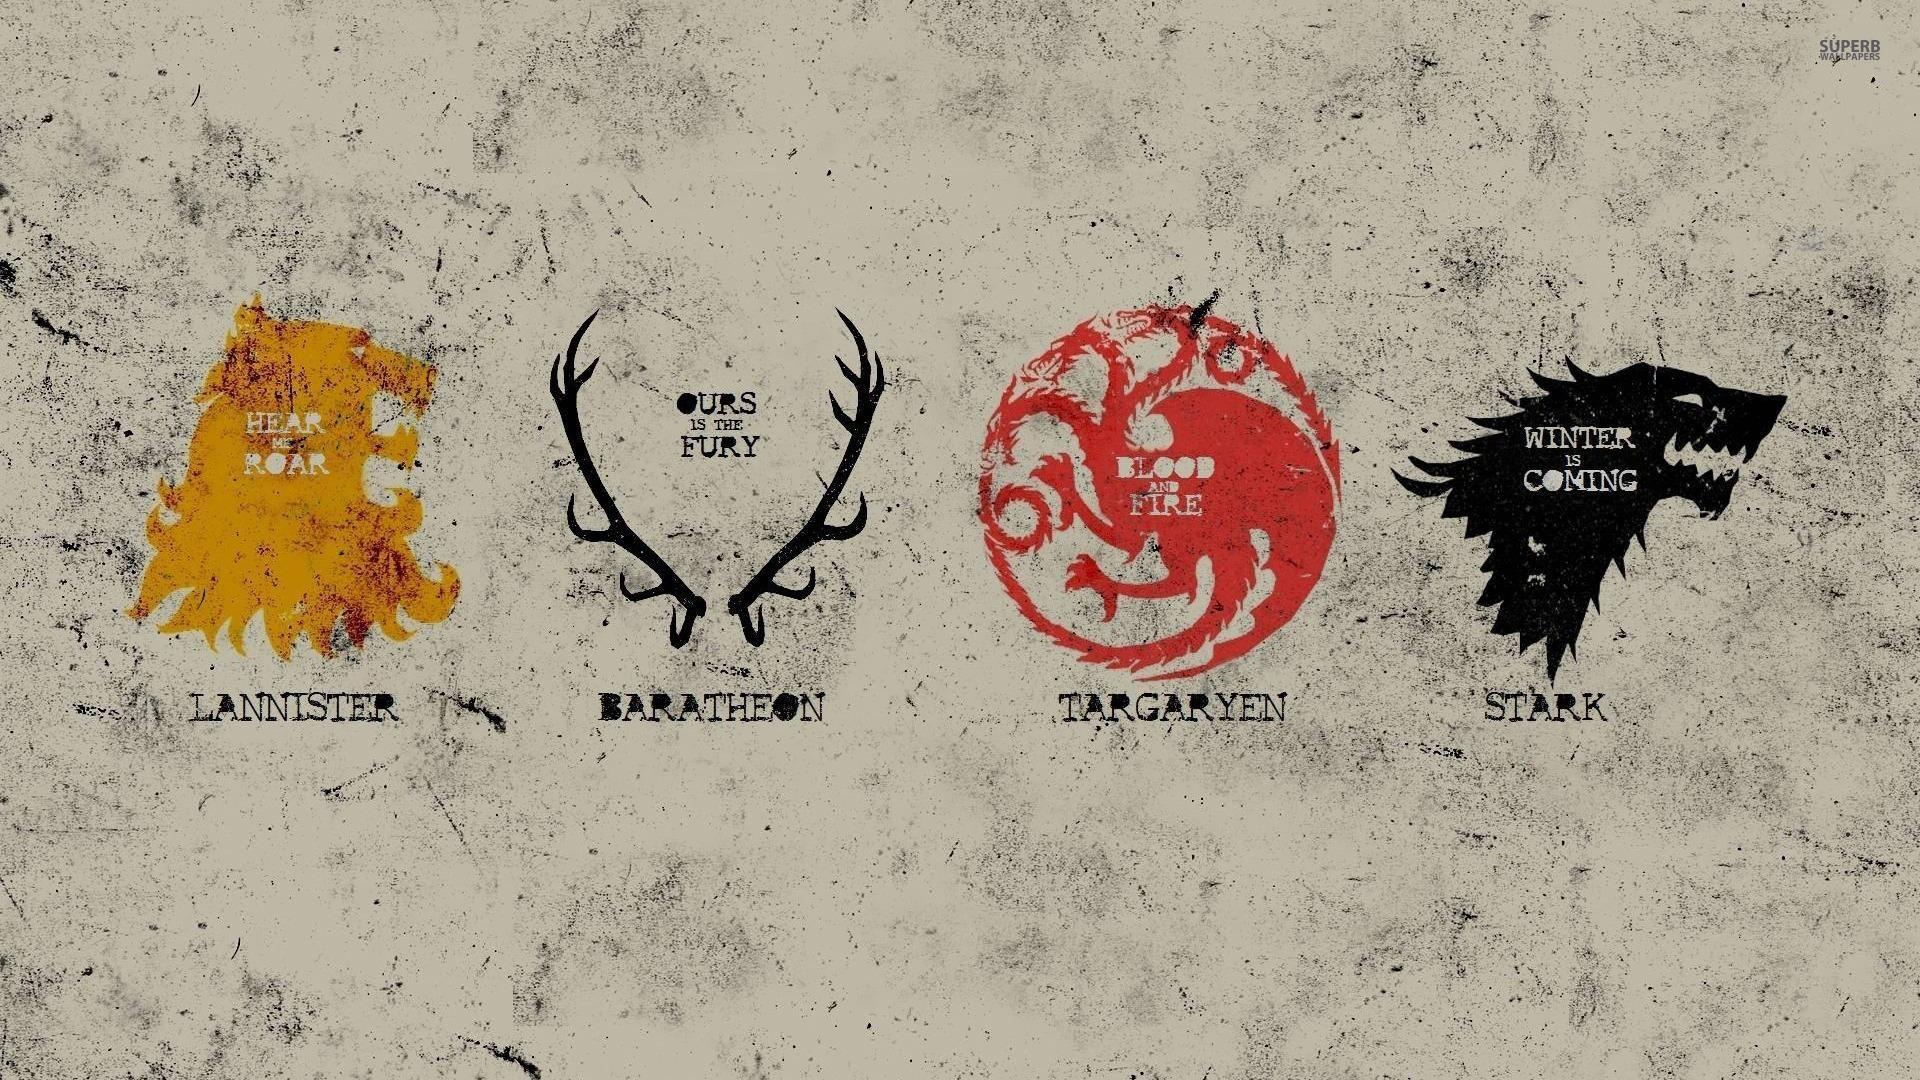 66 Westeros Map Wallpapers On Wallpaperplay Game Of Thrones